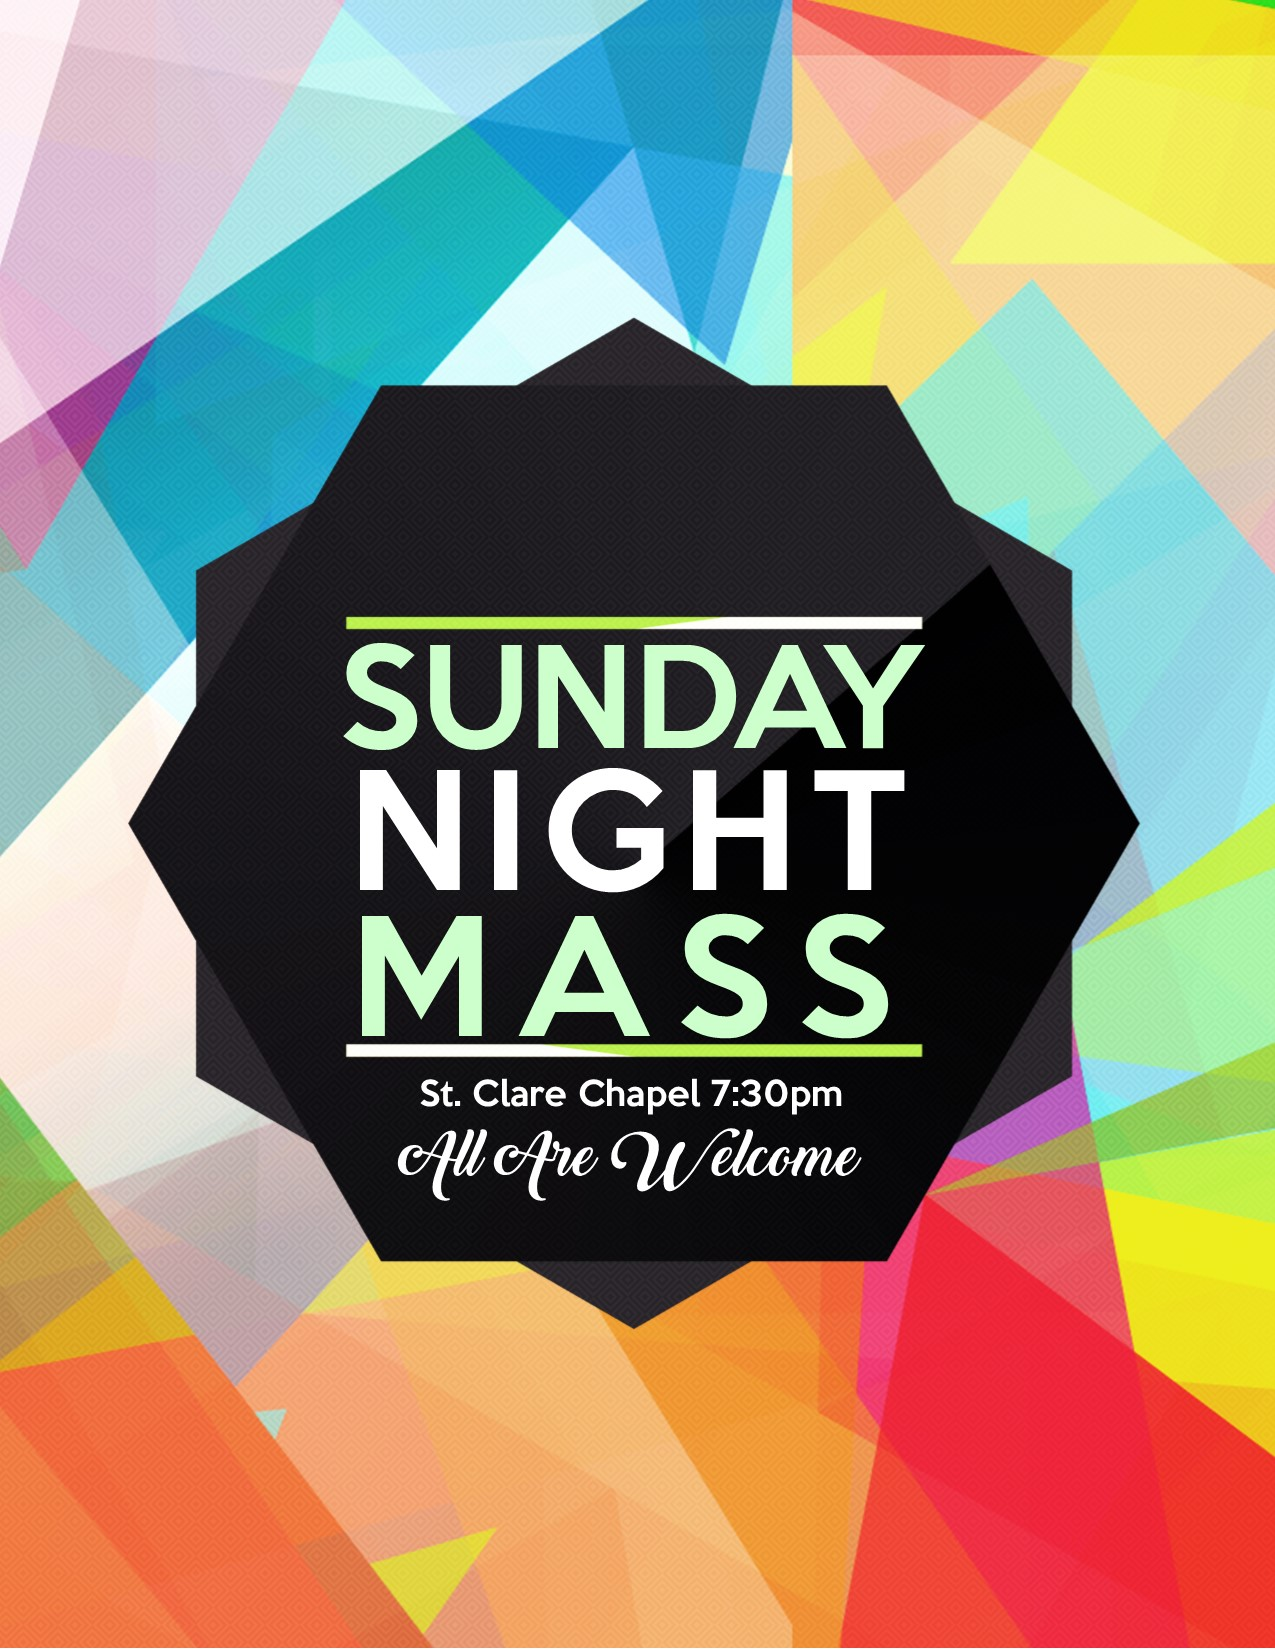 Sunday Night Mass